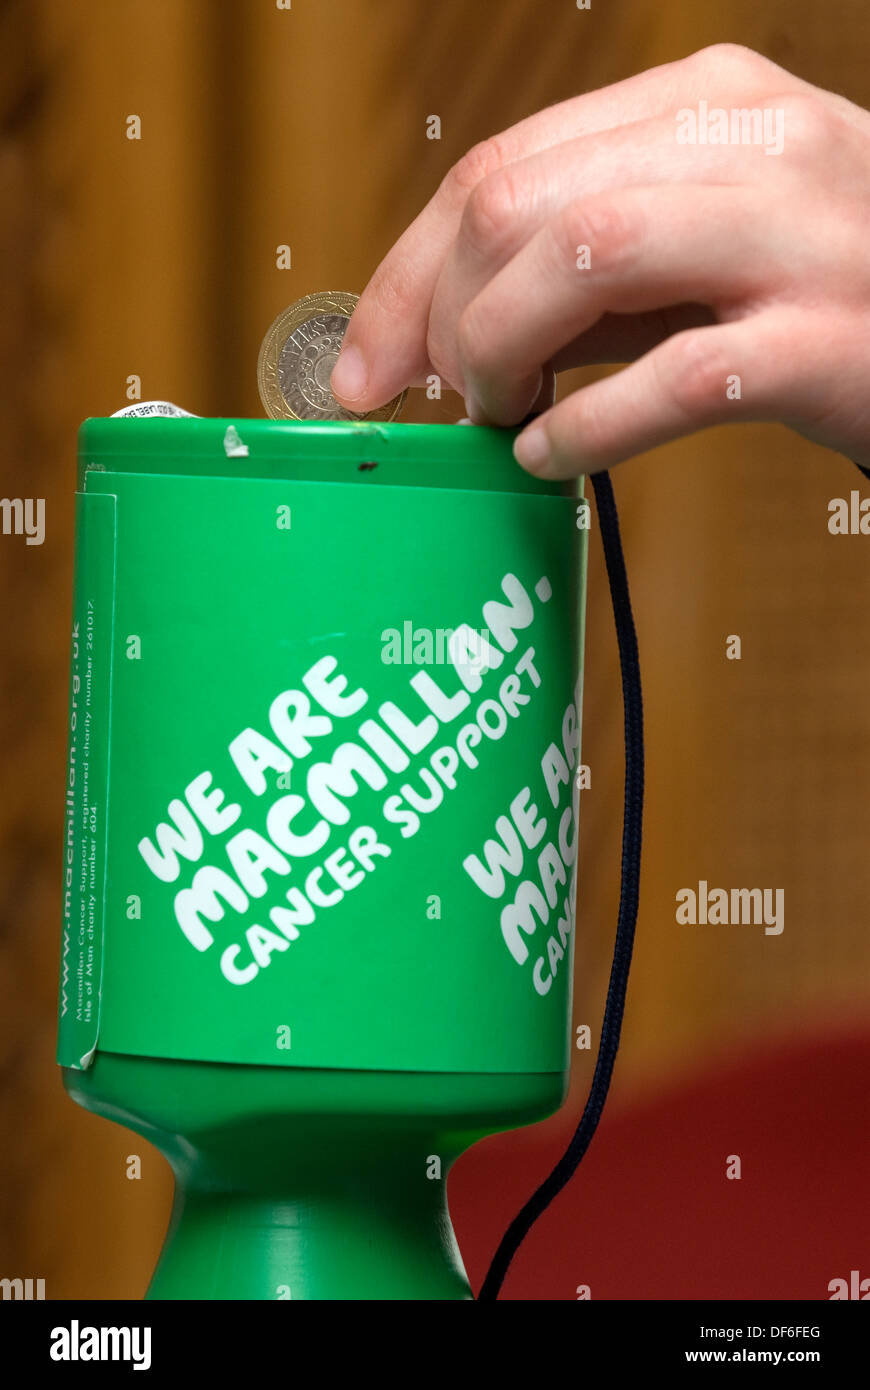 making-a-2-donation-to-macmillan-cancer-support-surrey-uk-DF6FEG.jpg?profile=RESIZE_400x